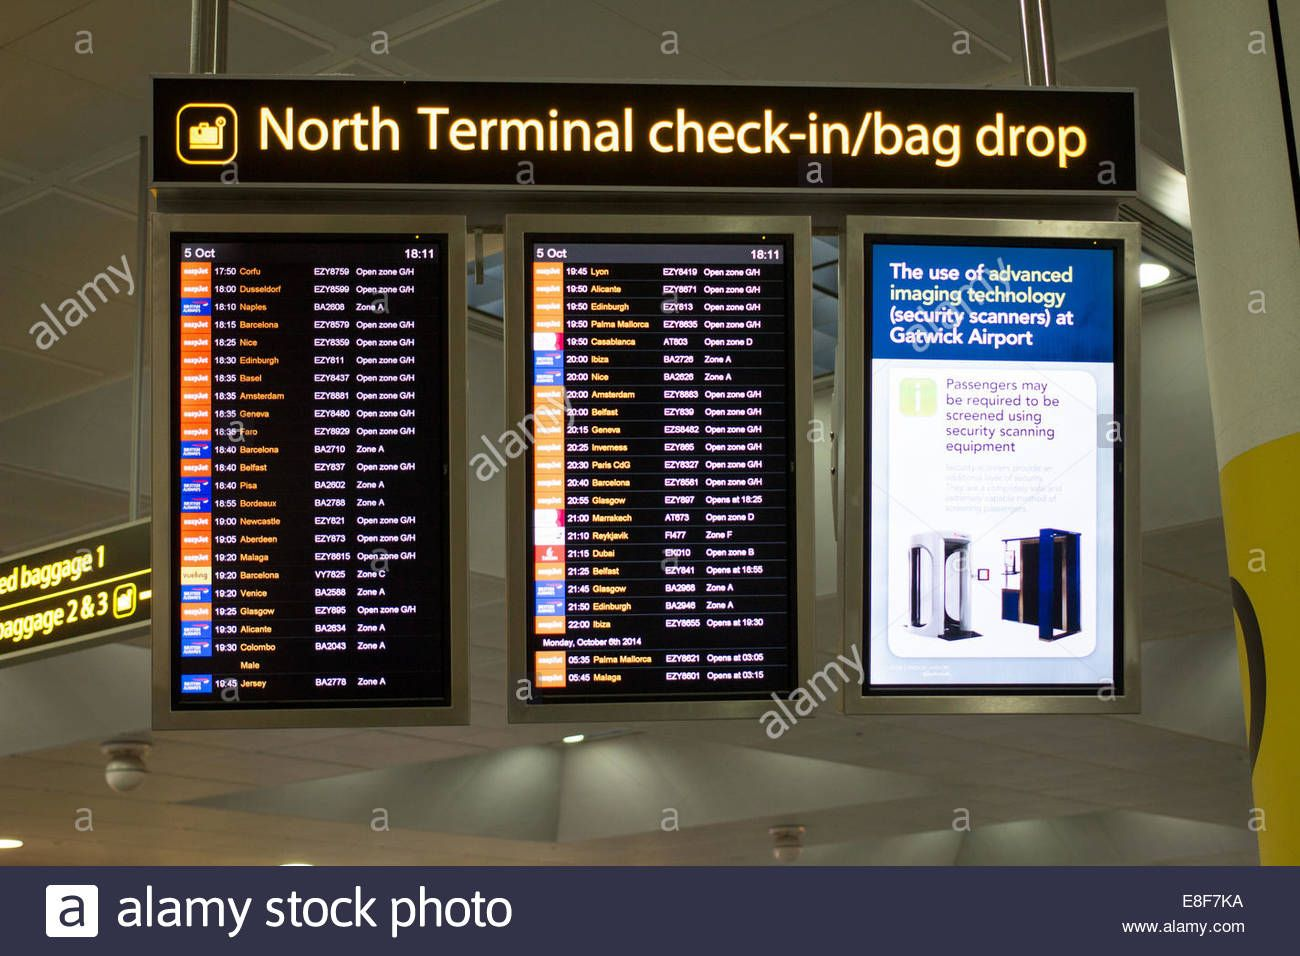 Download This Stock Image London Gatwick North Terminal Departure